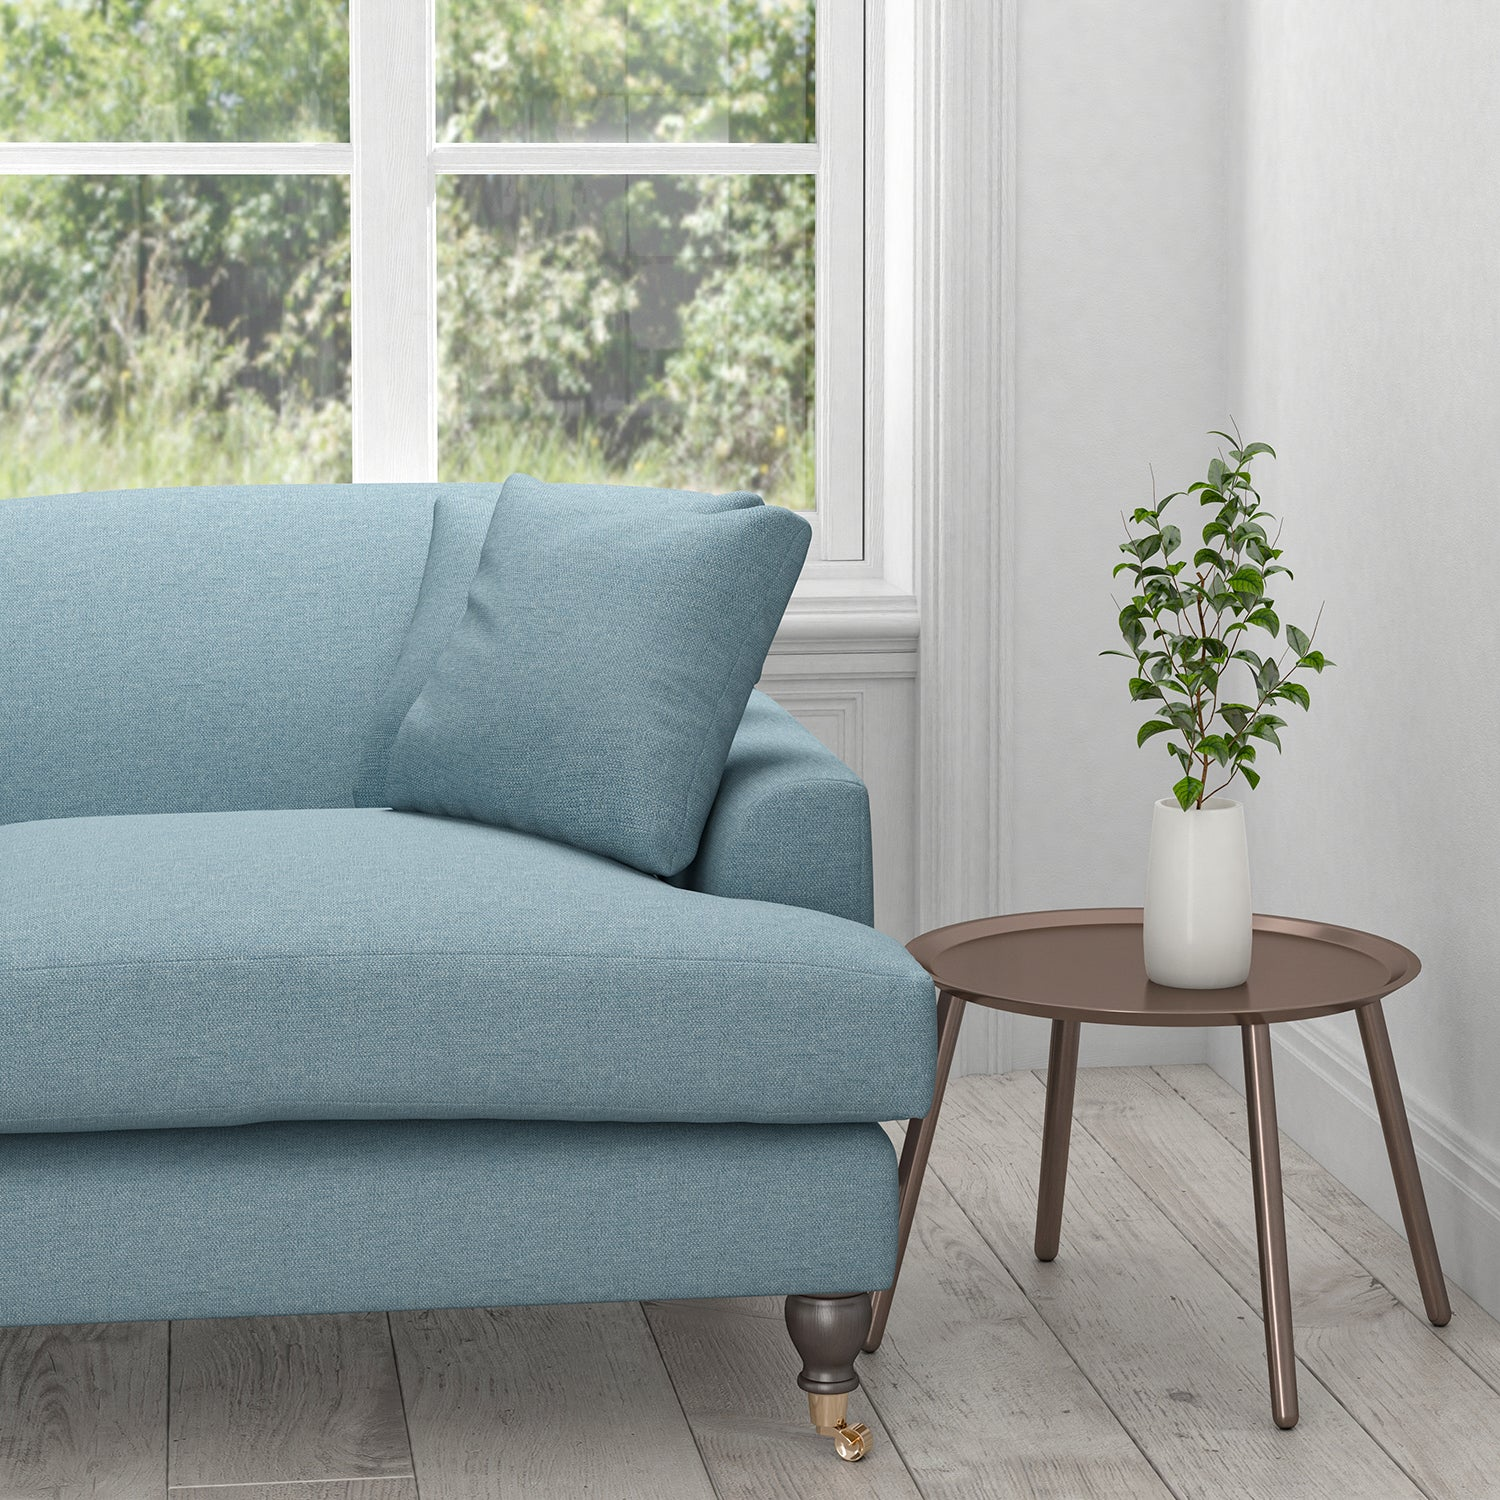 Sofa in a plain powder blue cotton upholstery fabric